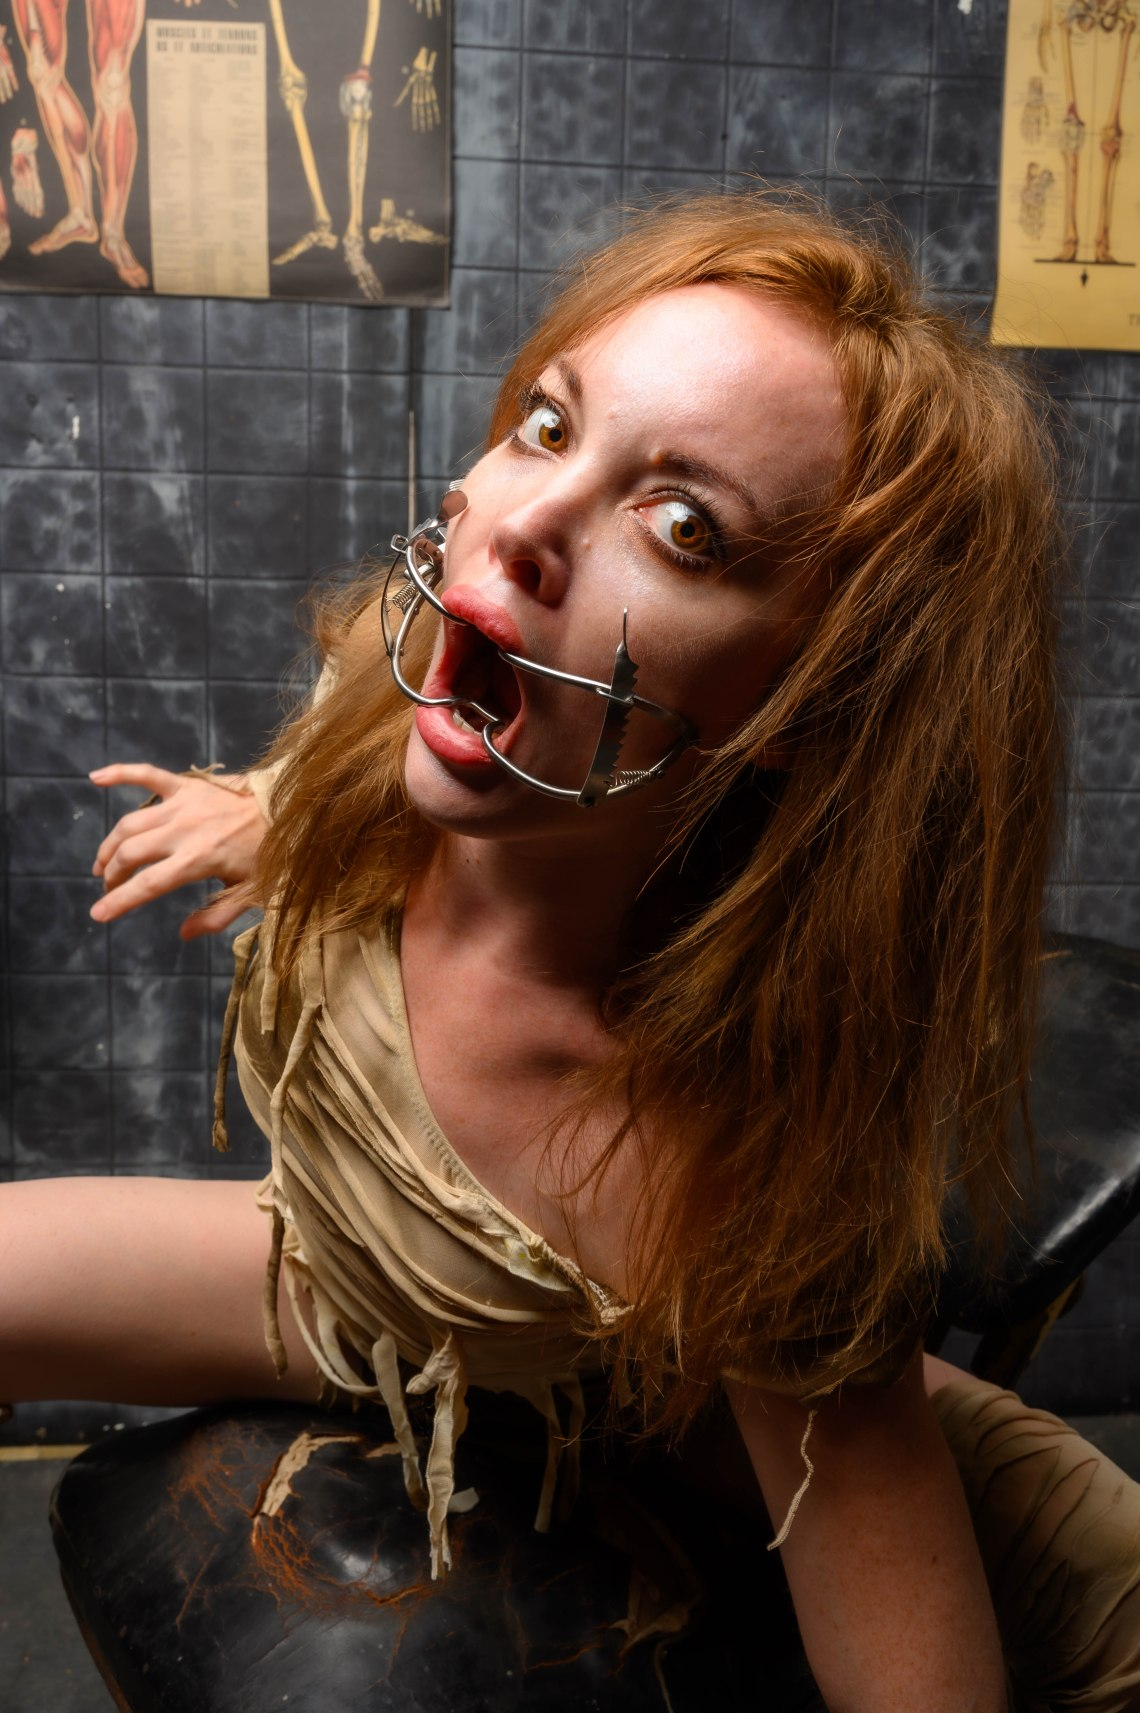 photo studio, photography studio, kink, kinky, kinky photography, dungeon, vintage medical, mouth fetish, dental fetish, feet fetish, foot fetish, sexy feet, soles, oral fetish, dentistry fetish, dark beauty, creepy sexy, contortion, contortionist, acrobat, event entertainment, party planner, redheads, foot fetish, sexy feet, feet worship, feet queen, feet fetish, pretty feet, bare feet, Las Vegas photographer, Las Vegas models, fetish model,